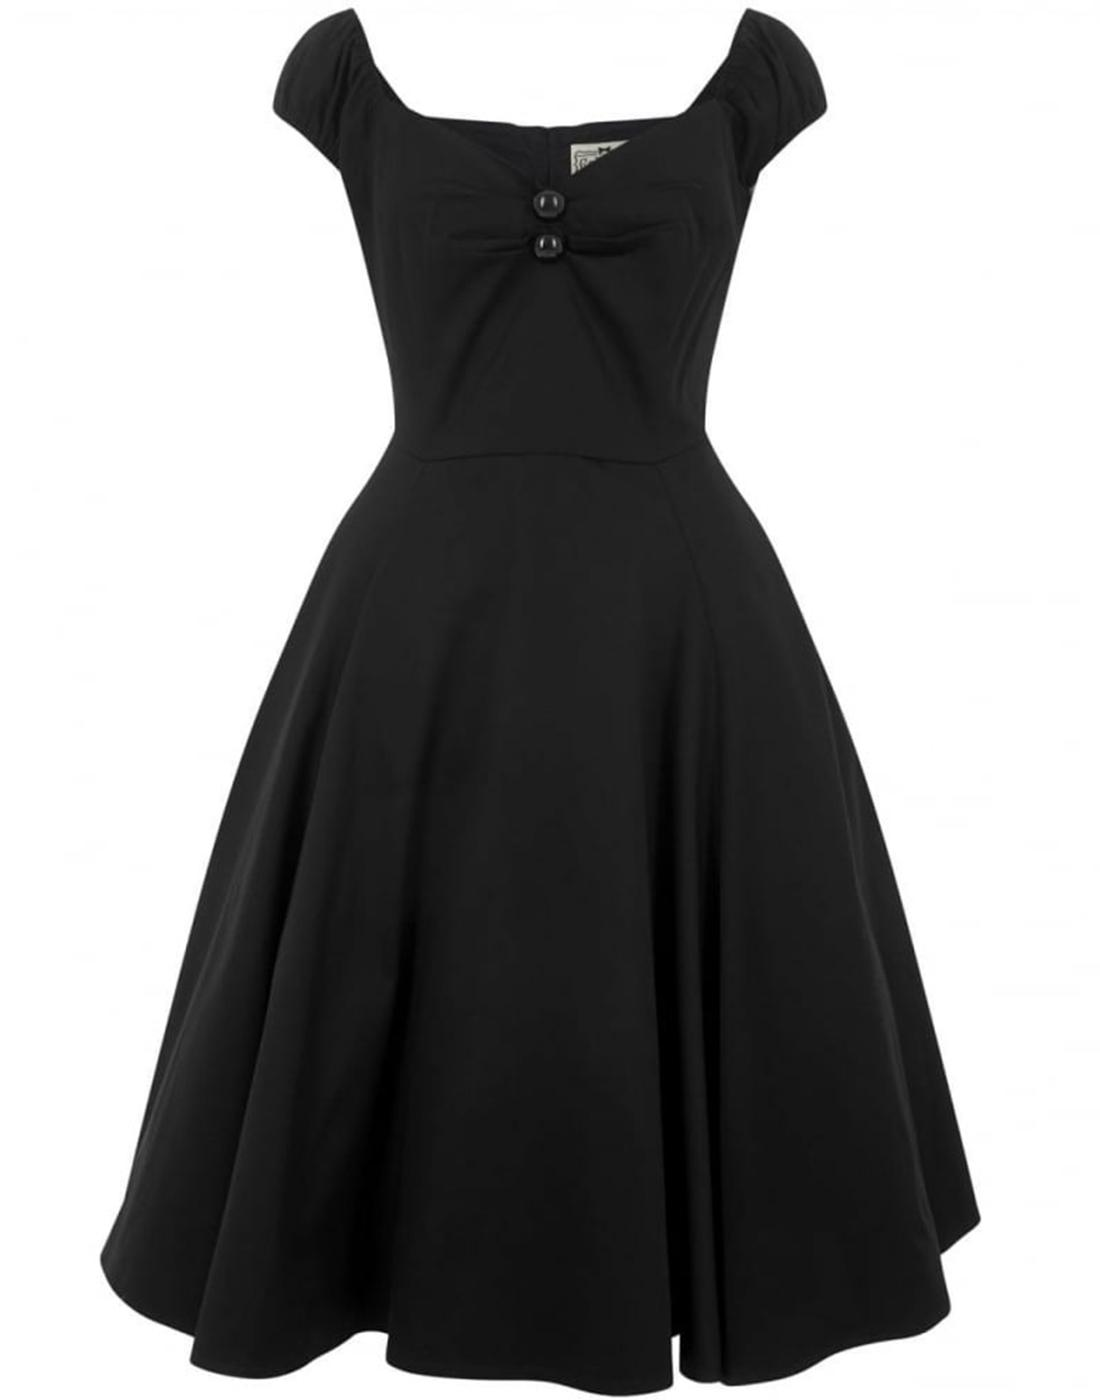 Dolores COLLECTIF Vintage 1950s Doll Dress (Black)